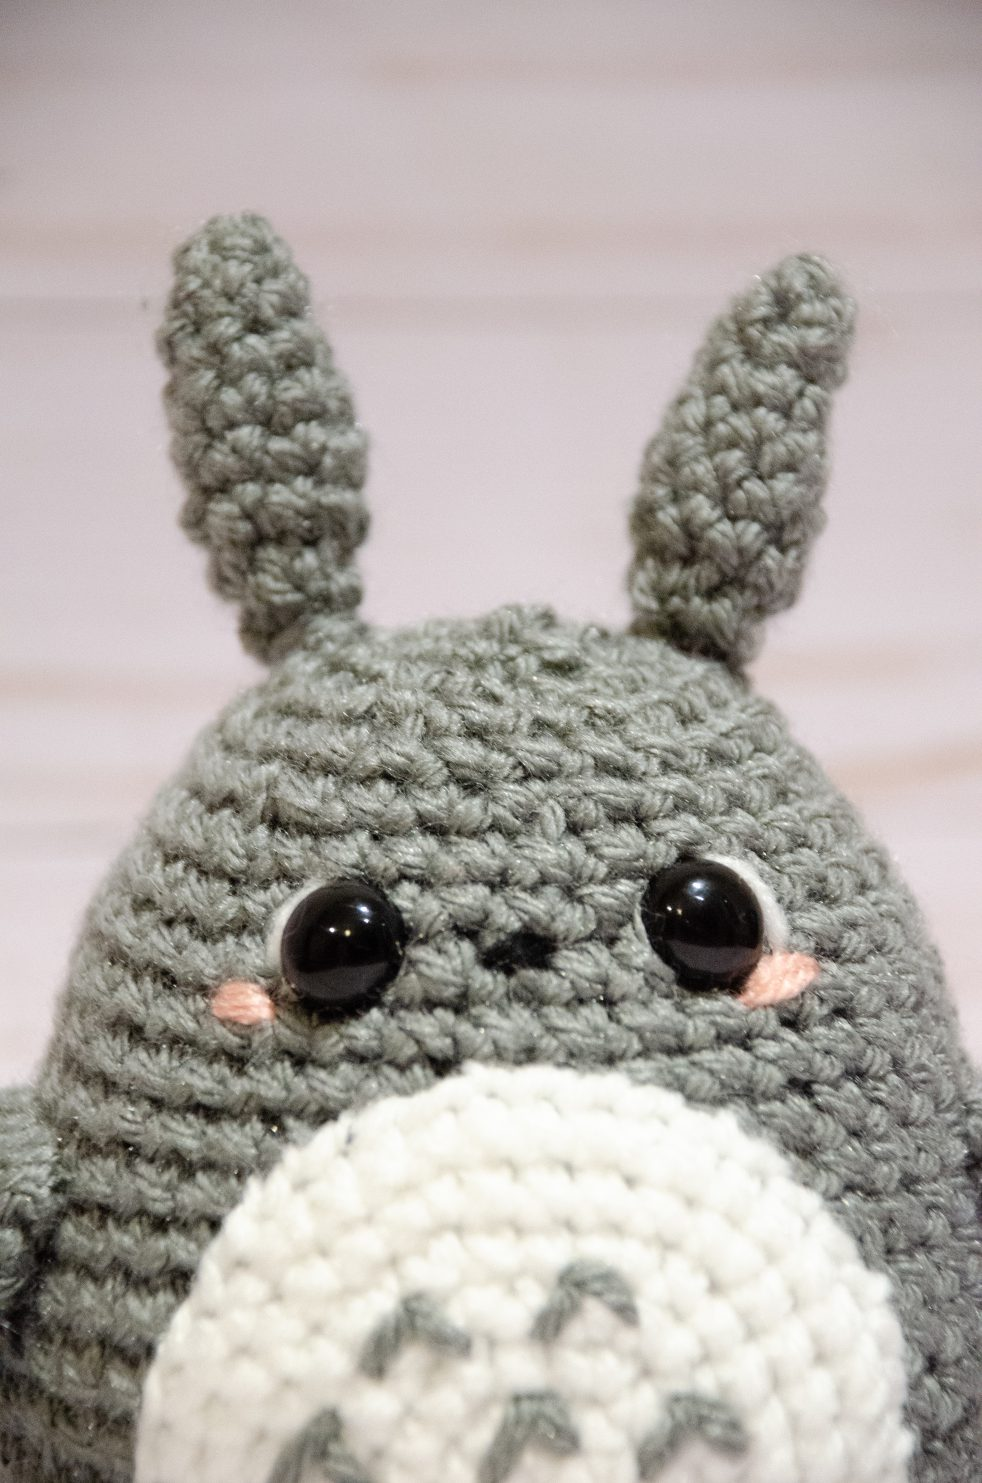 up close photo of crochet totoro